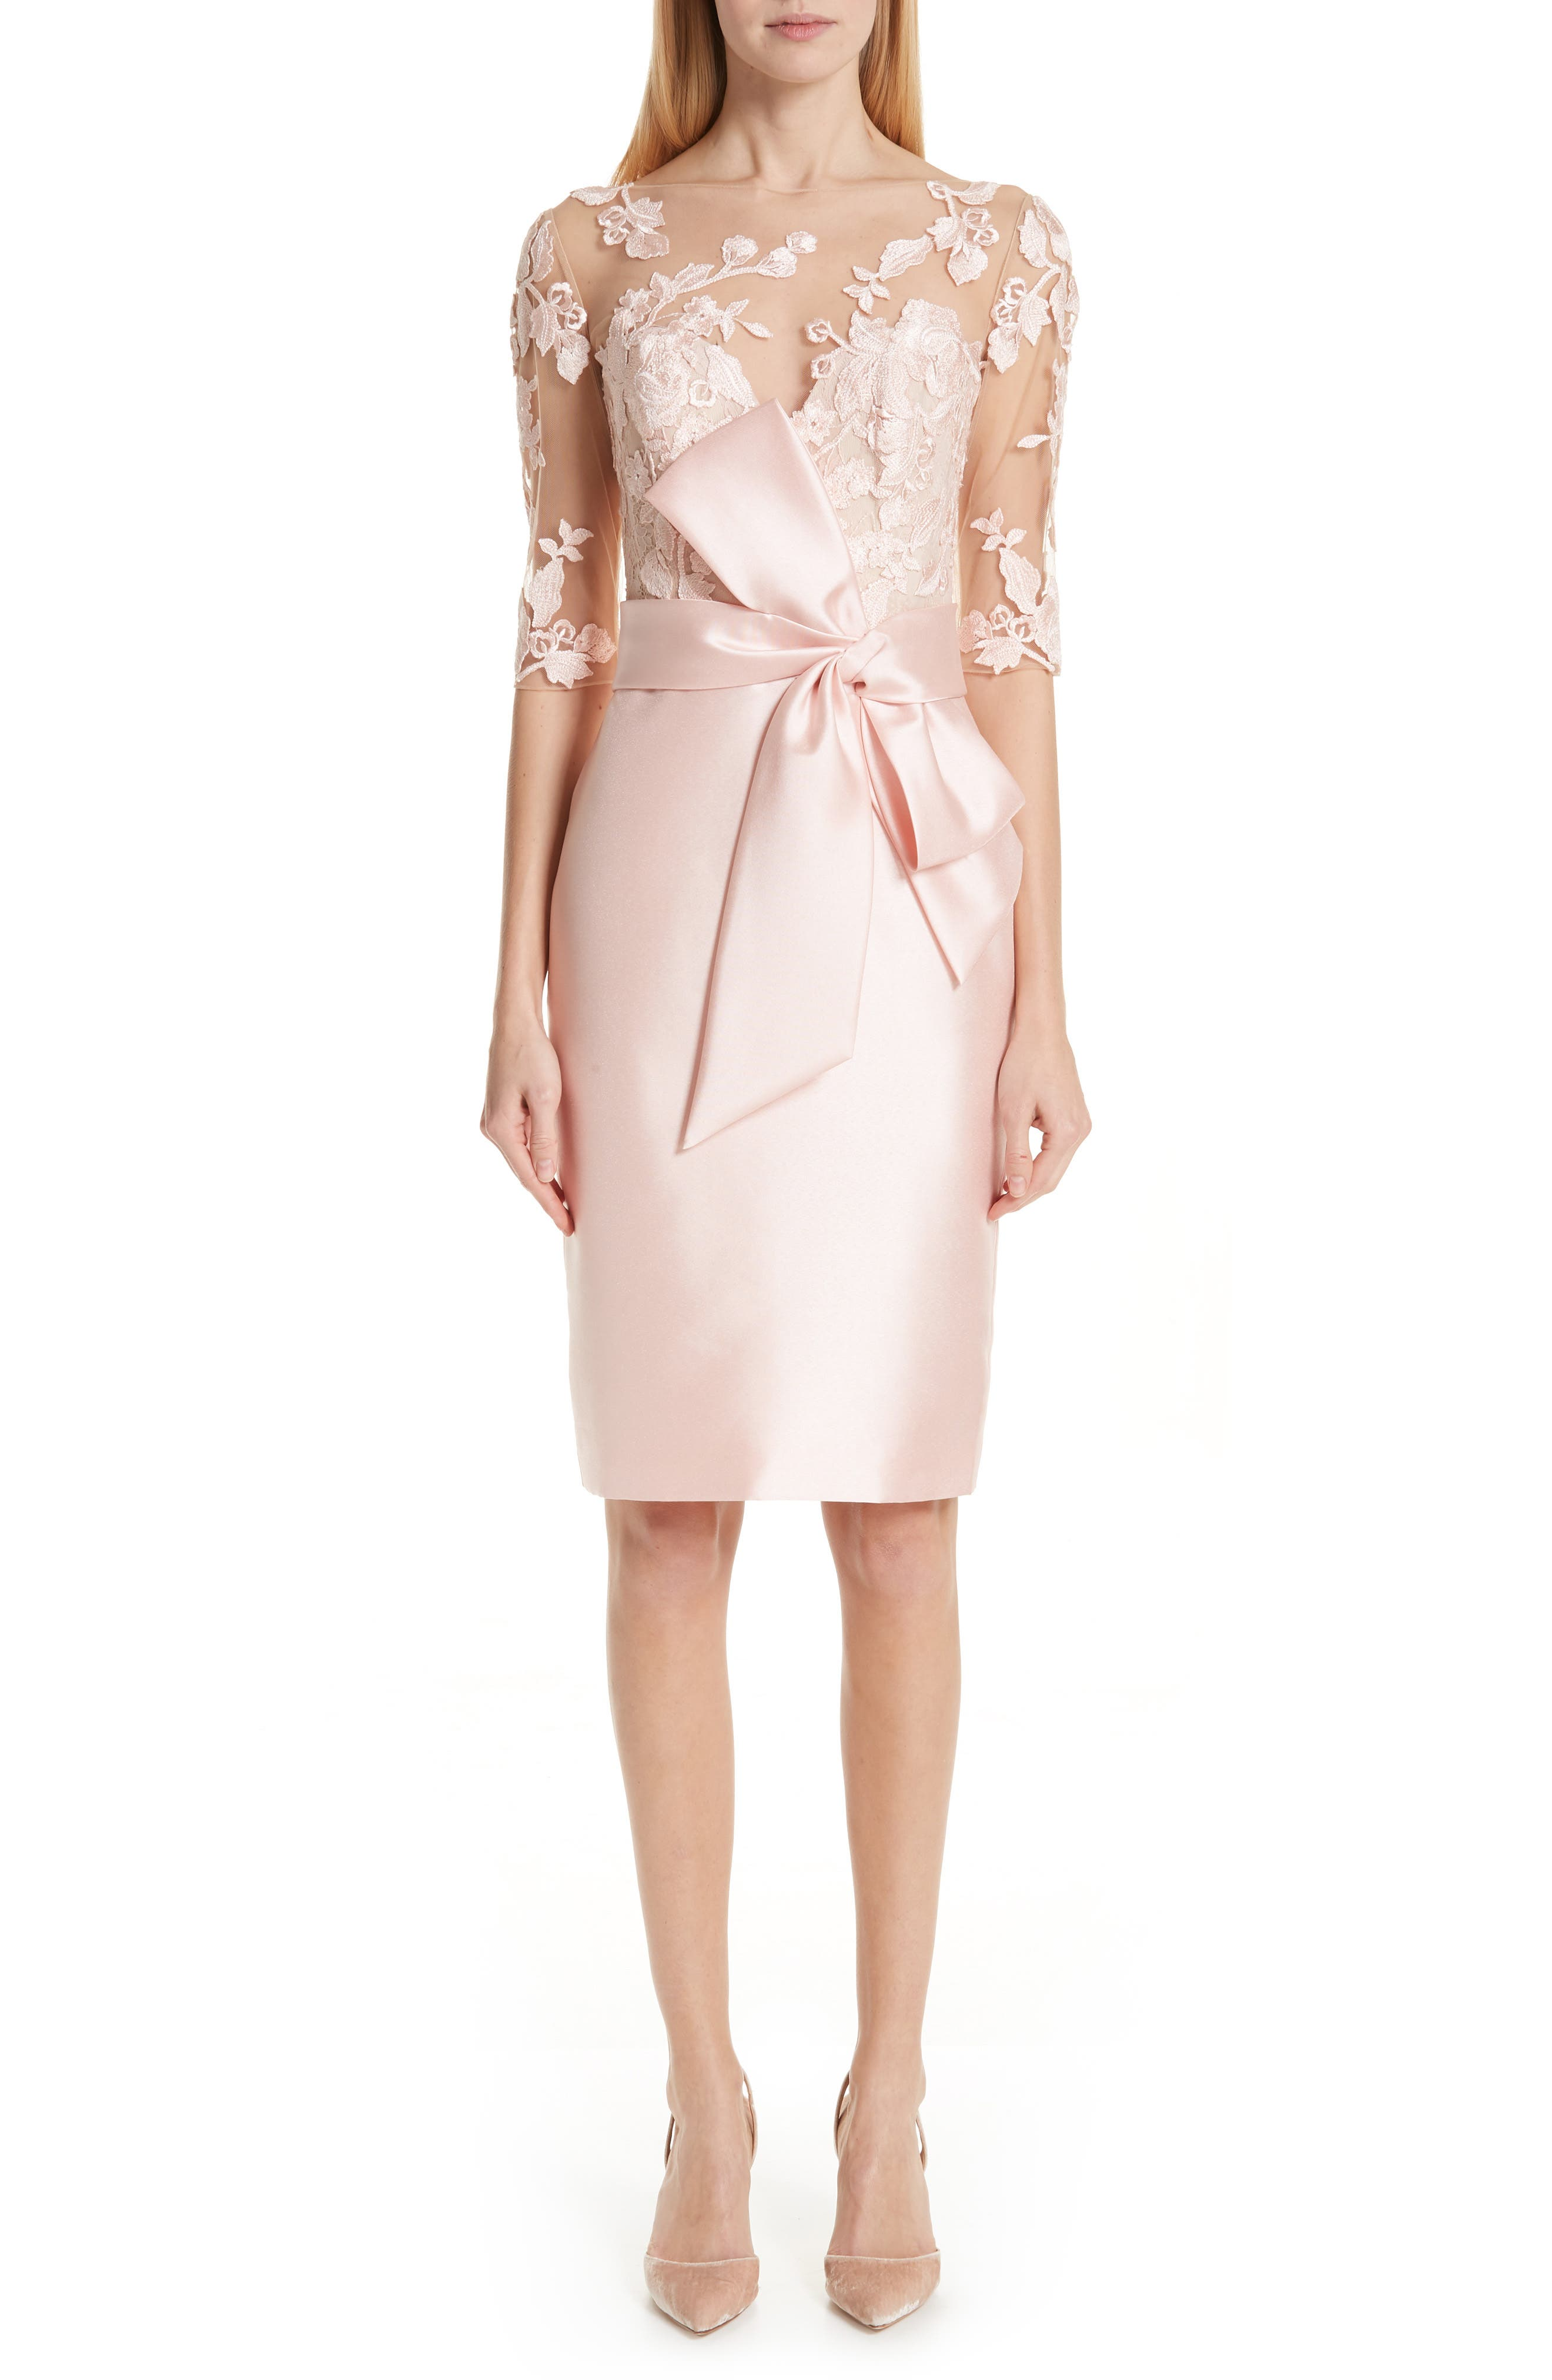 BADGLEY MISCHKA COLLECTION Badgley Mischka Lace Accent Bow Cocktail Dress, Main, color, PETAL